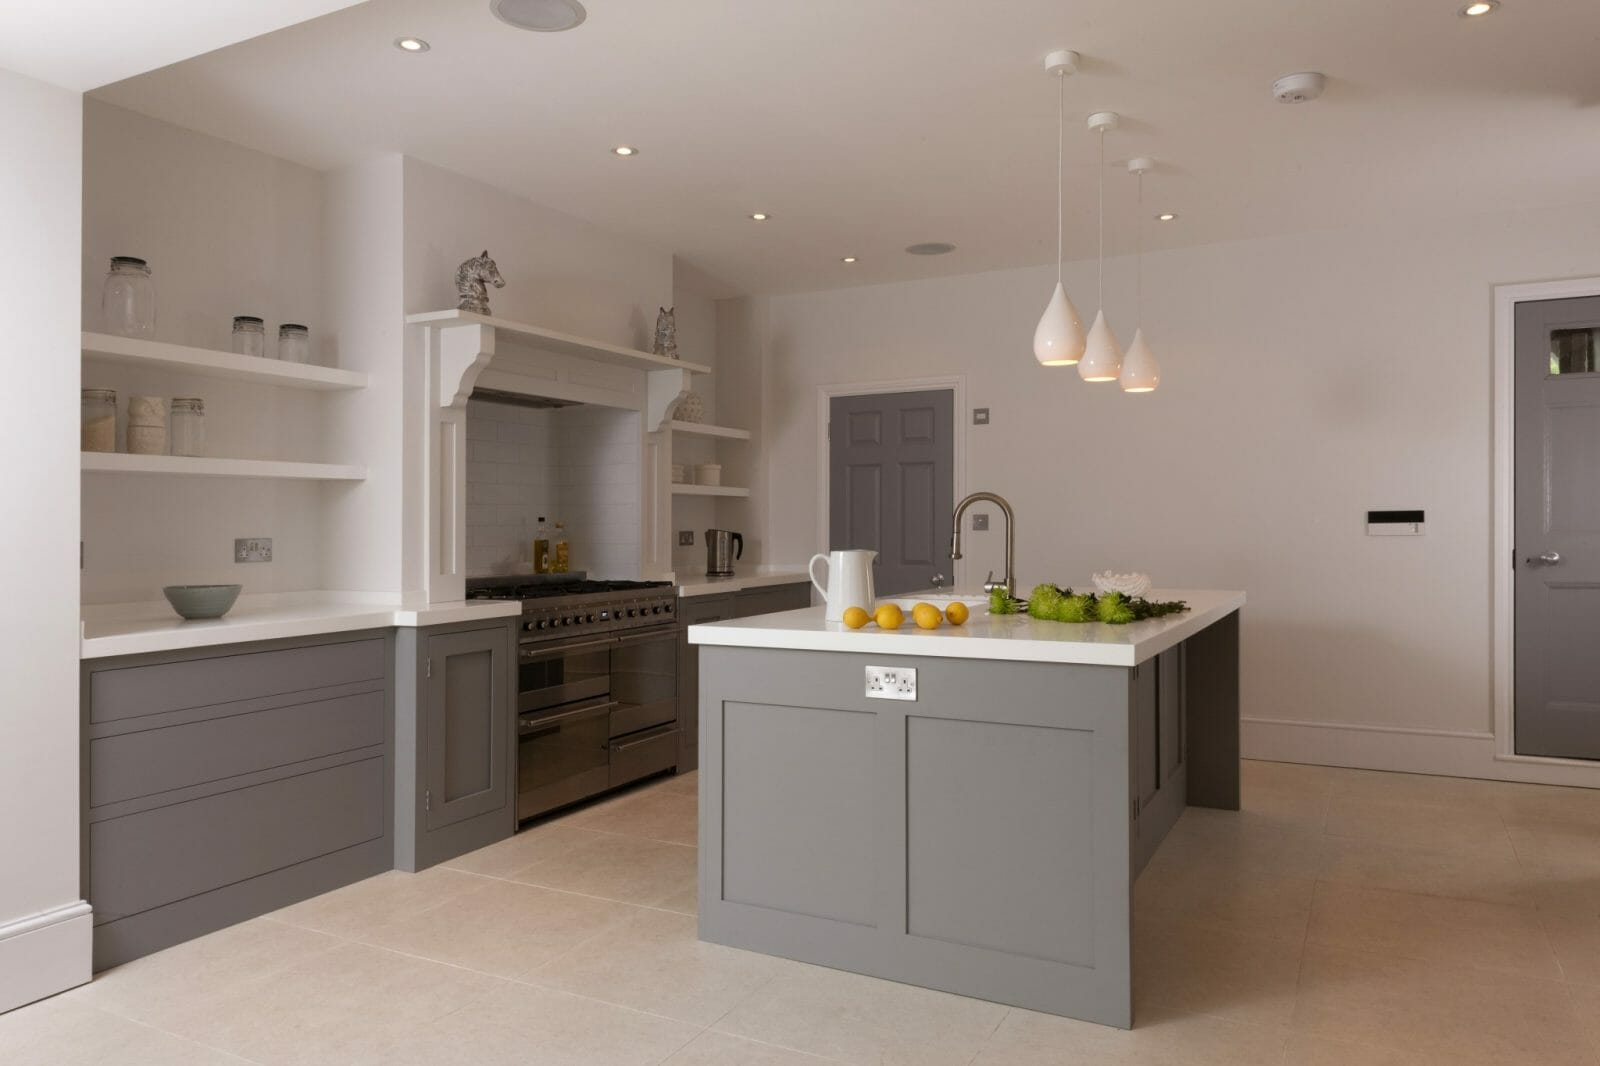 Battersea london handleless shaker kitchen higham furniture Handleless kitchen drawers design